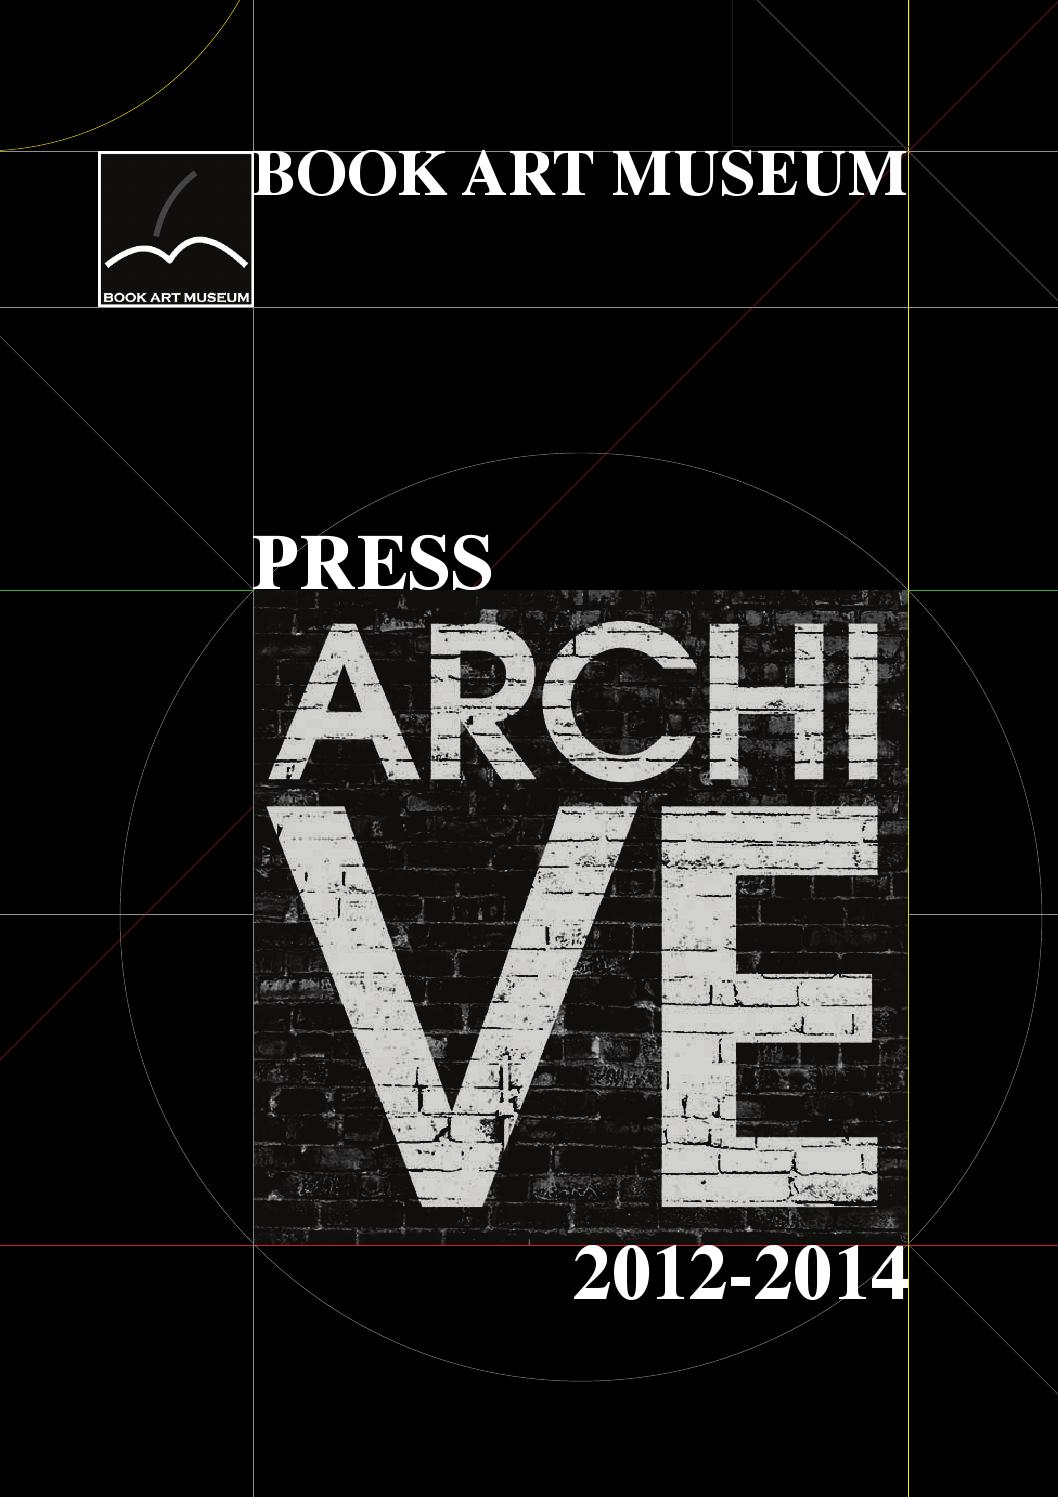 aba870b5d5 Book Art Museum. Press Archive 2012-2014 by Book Art Museum - issuu